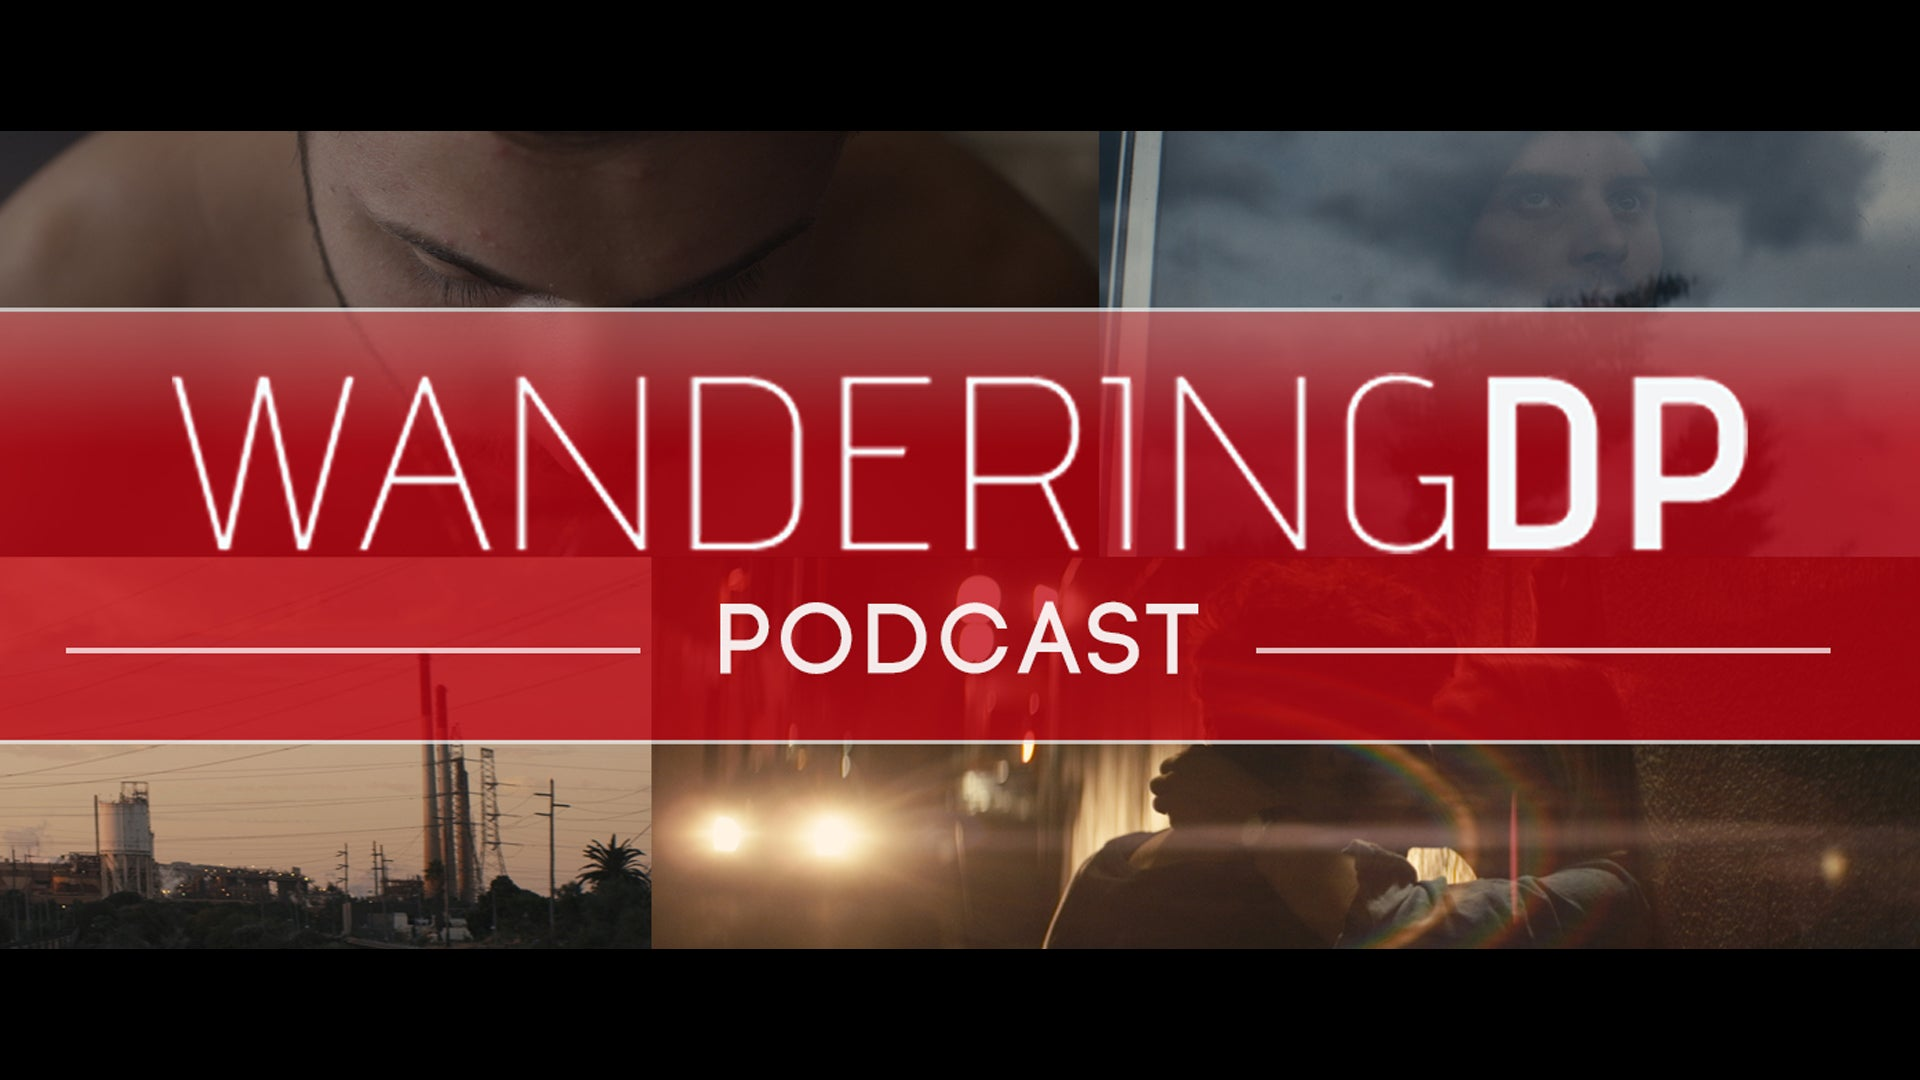 The Wandering DP Podcast: Episodes #31 - 40